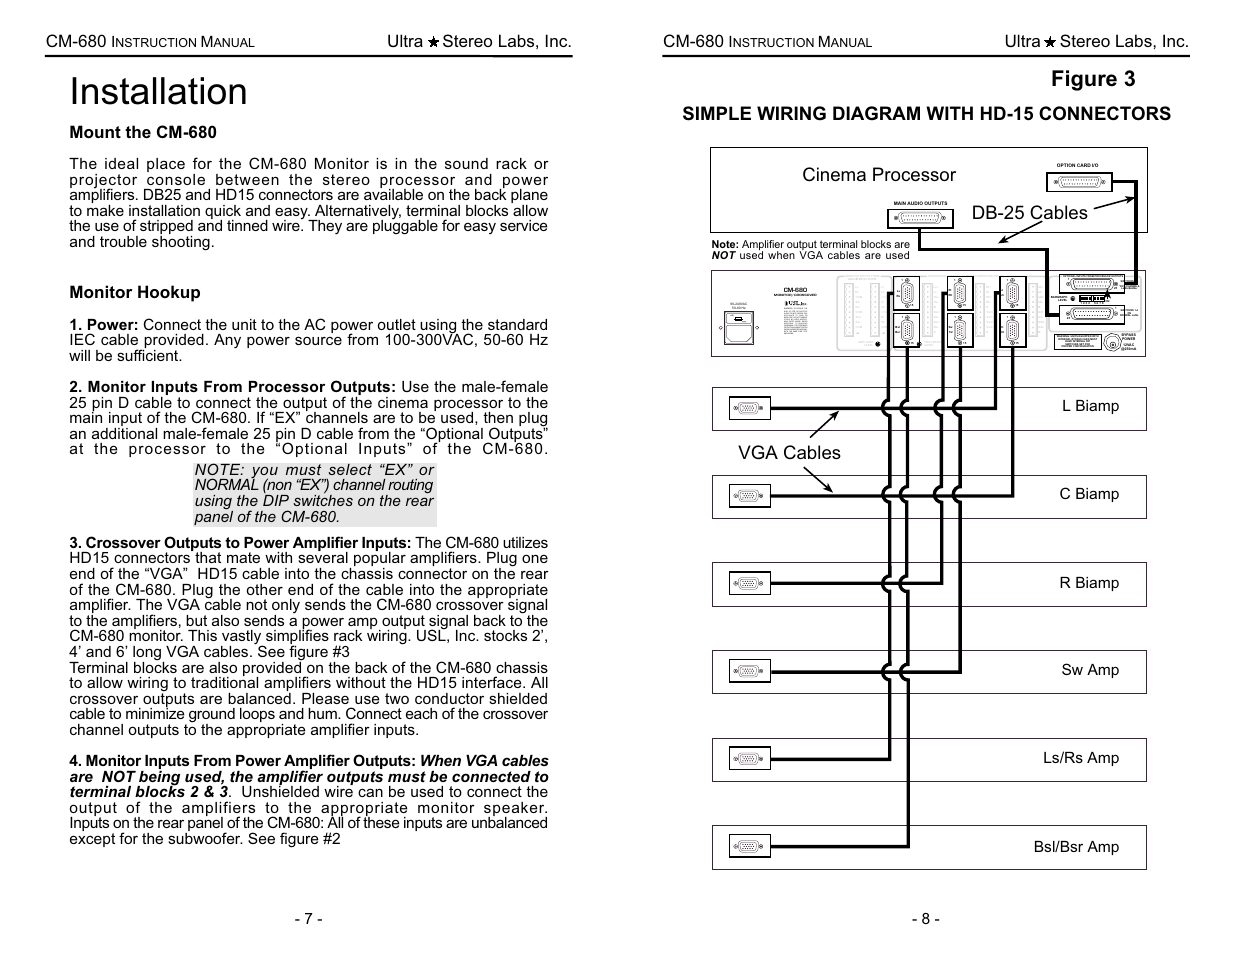 hight resolution of installation figure 3 simple wiring diagram with hd 15 connectors usl cm 680 user manual page 8 16